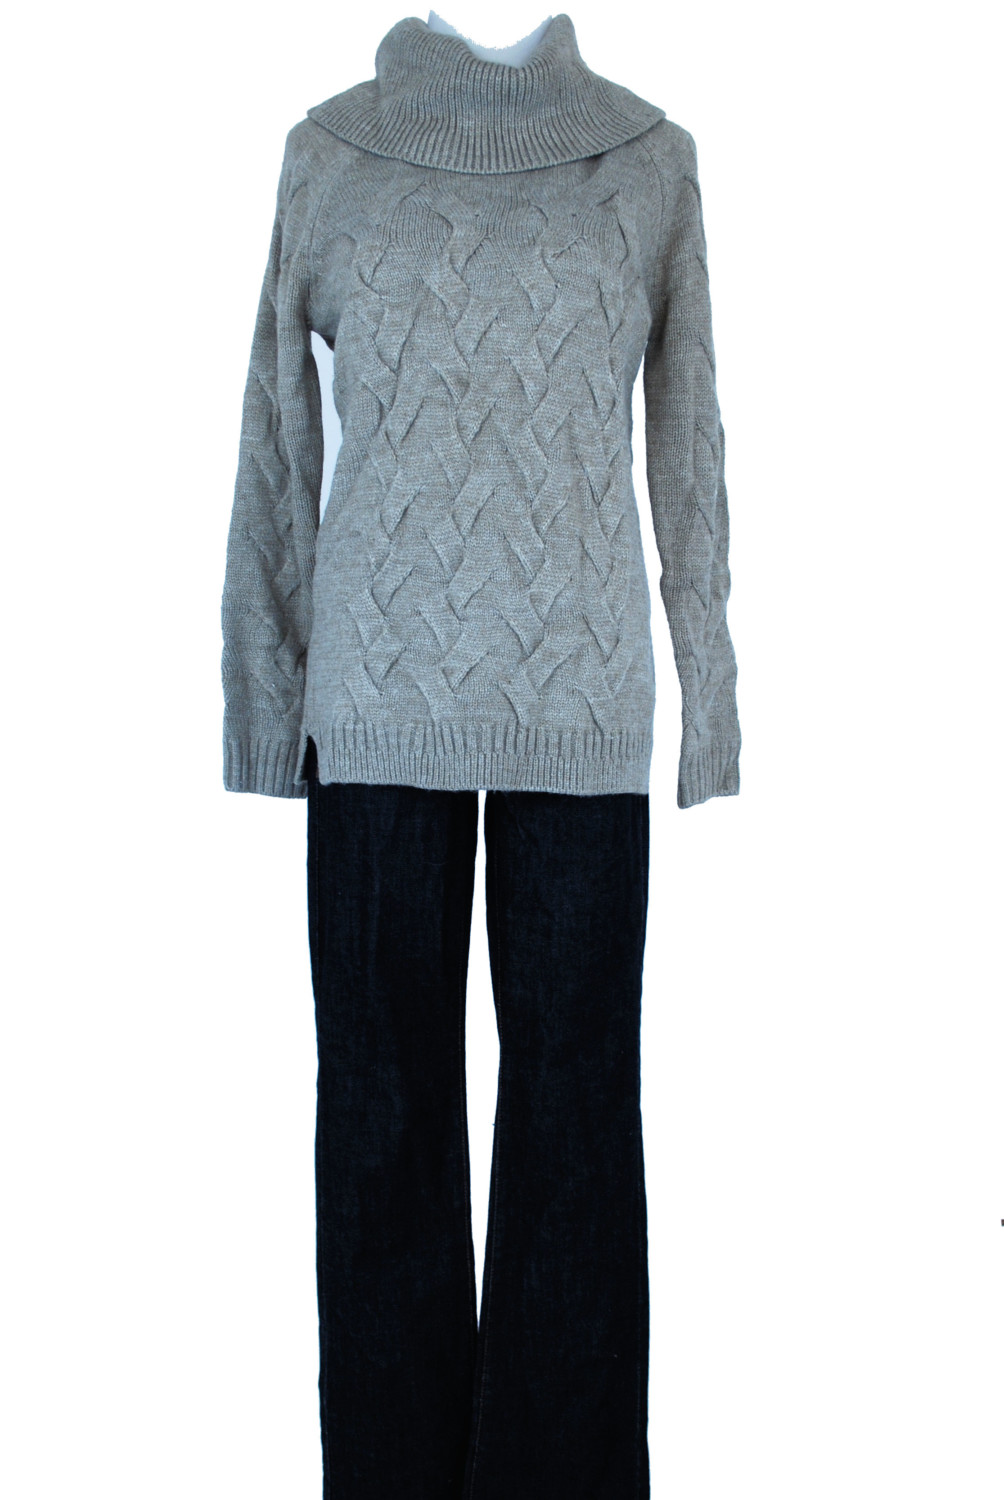 Calvin Klein Sweater – Original Retail: $89, CWS: $20